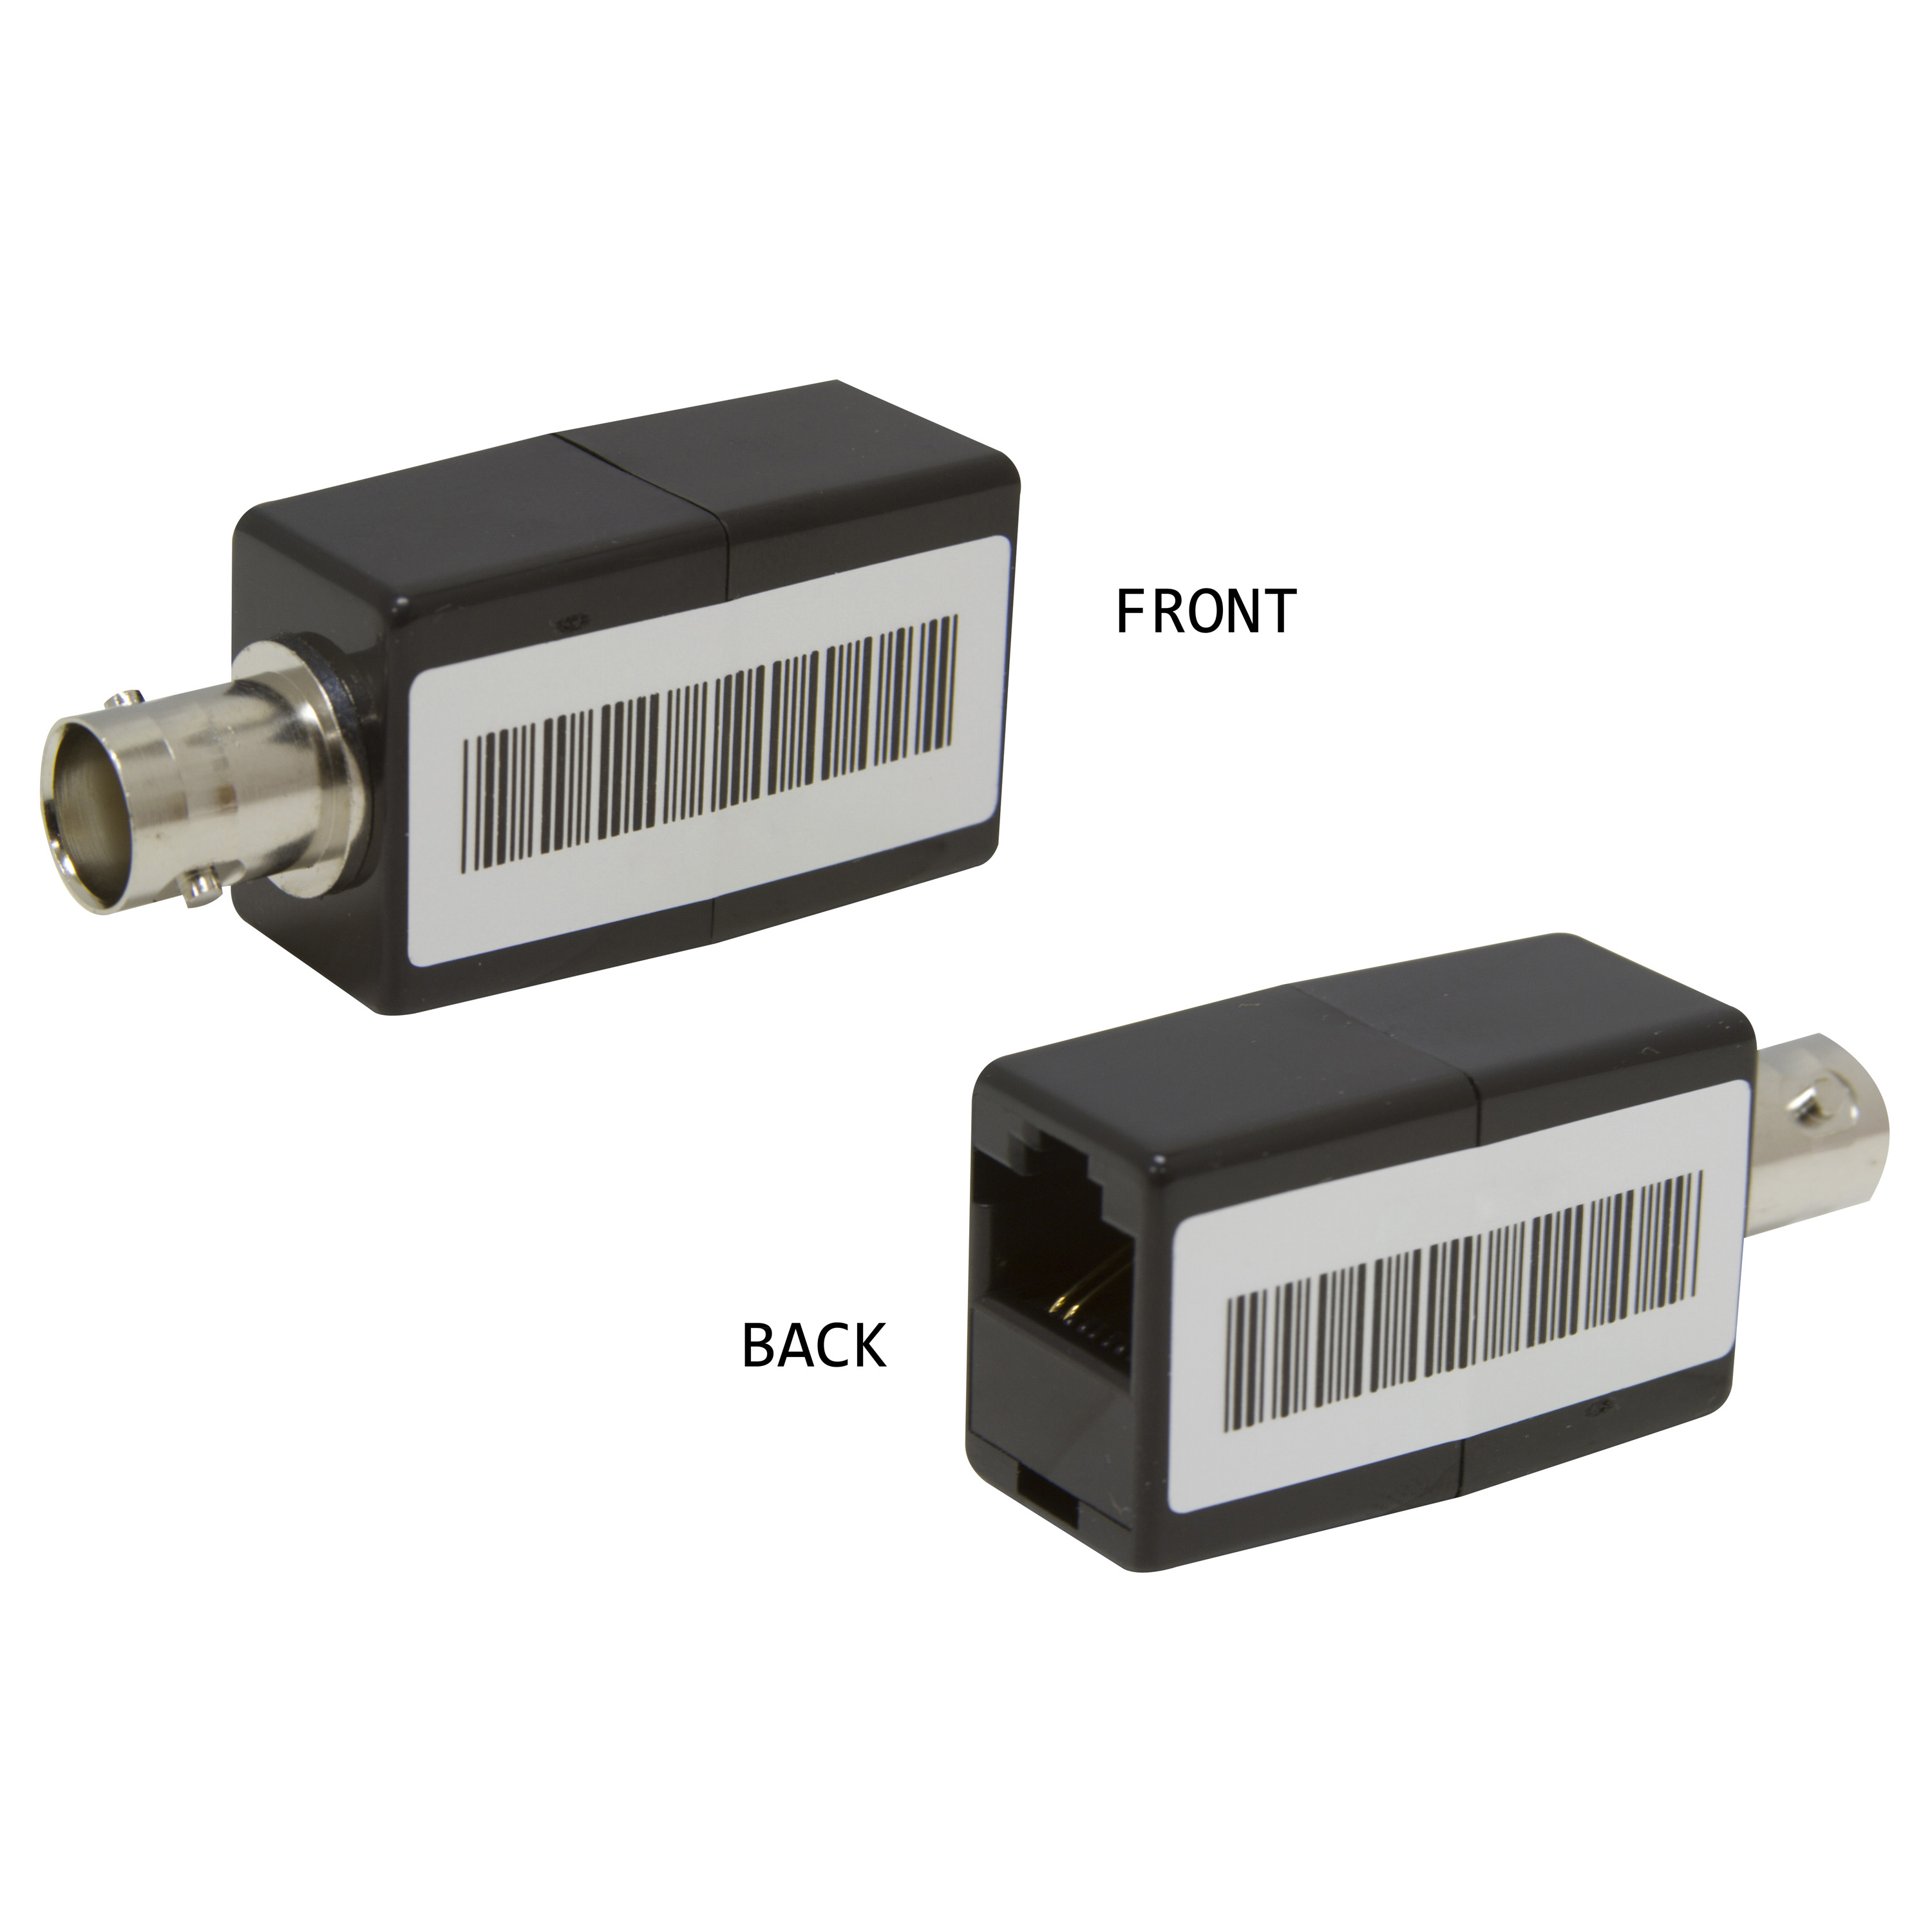 RJ45 To Serial Adapter DB9 Female Pinout likewise Cisco RJ45 DB9 Pinout besides DB9 Serial Cable Pinout RJ45 in addition DB9 Serial Cable Pinout furthermore RS232 Serial Cable Pinout. on rj45 to db9 serial cable pinout